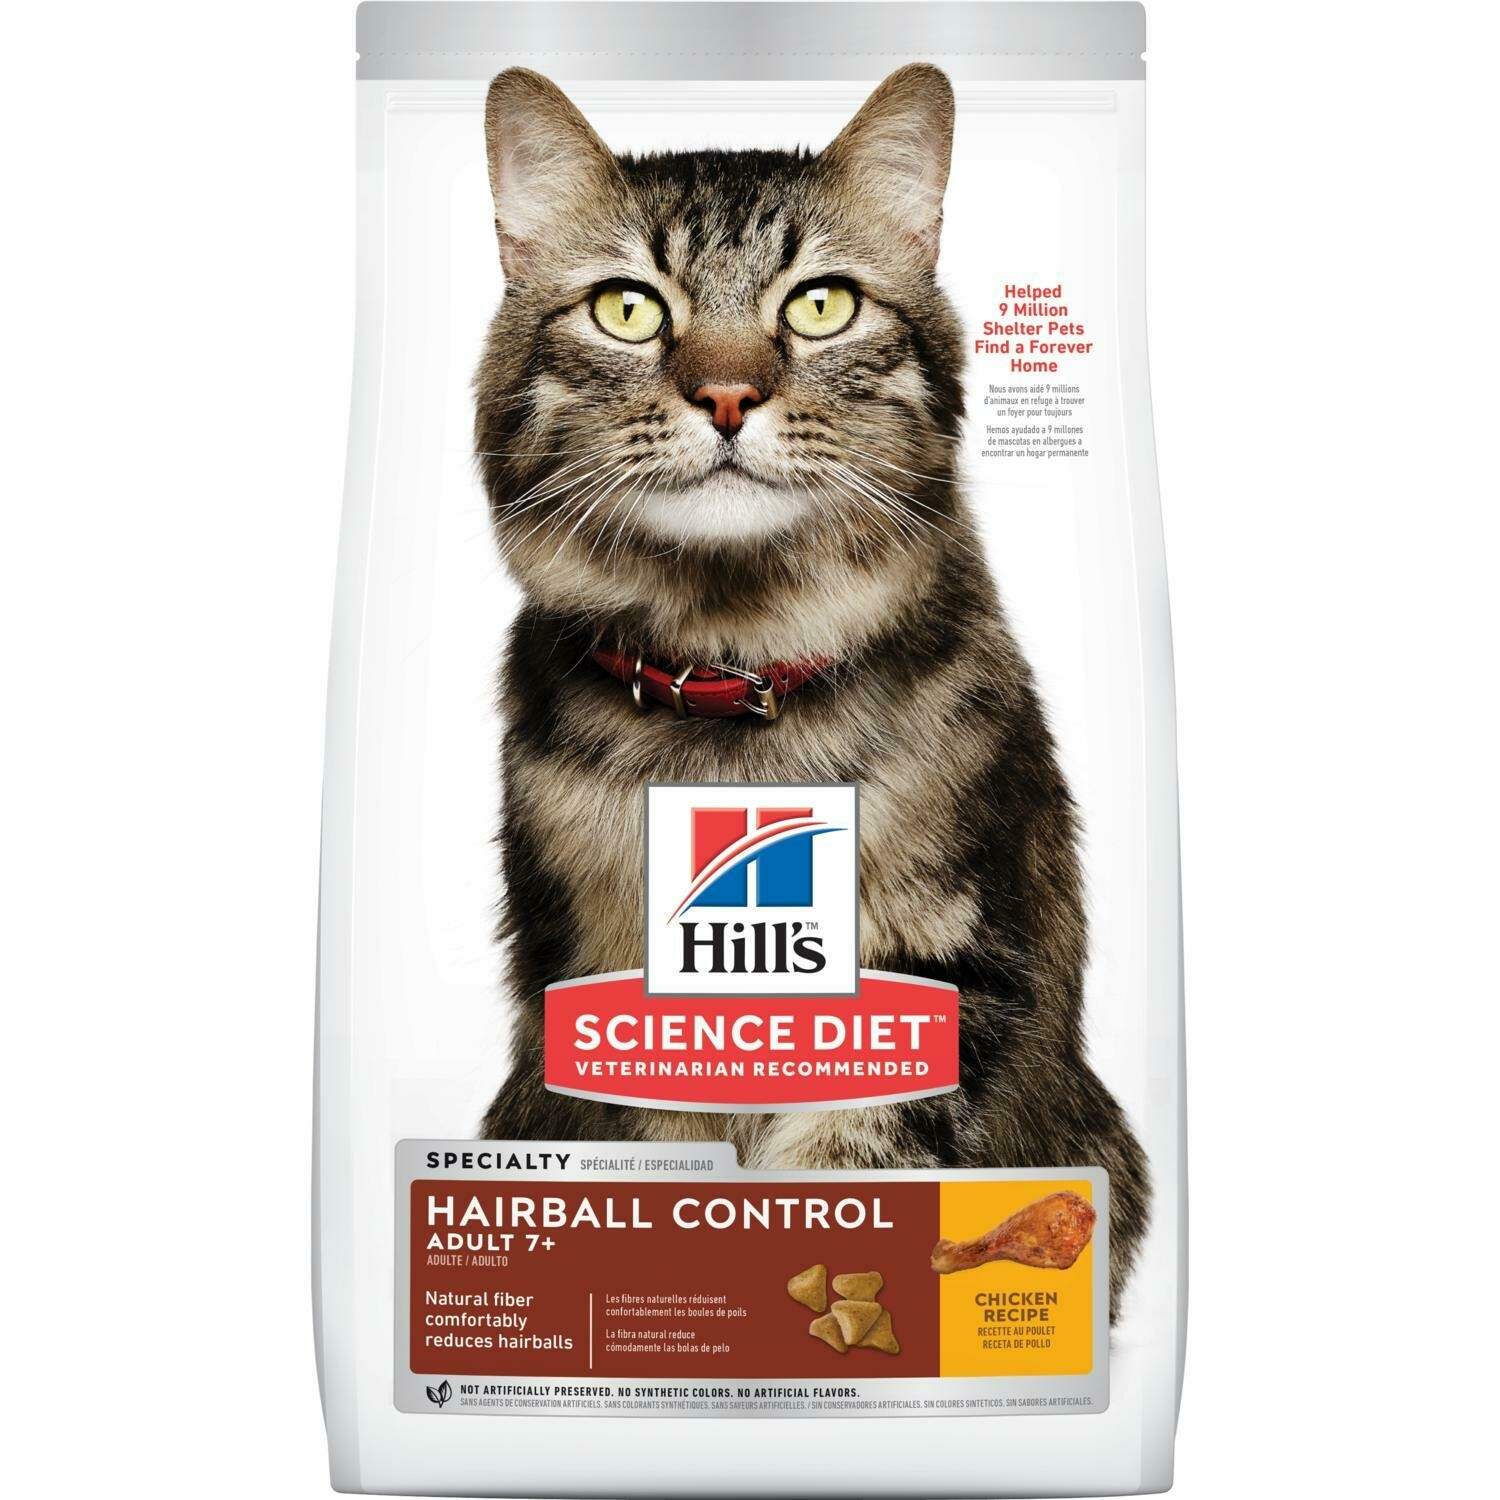 Hill's Adult 7+ Hairball Control cat food